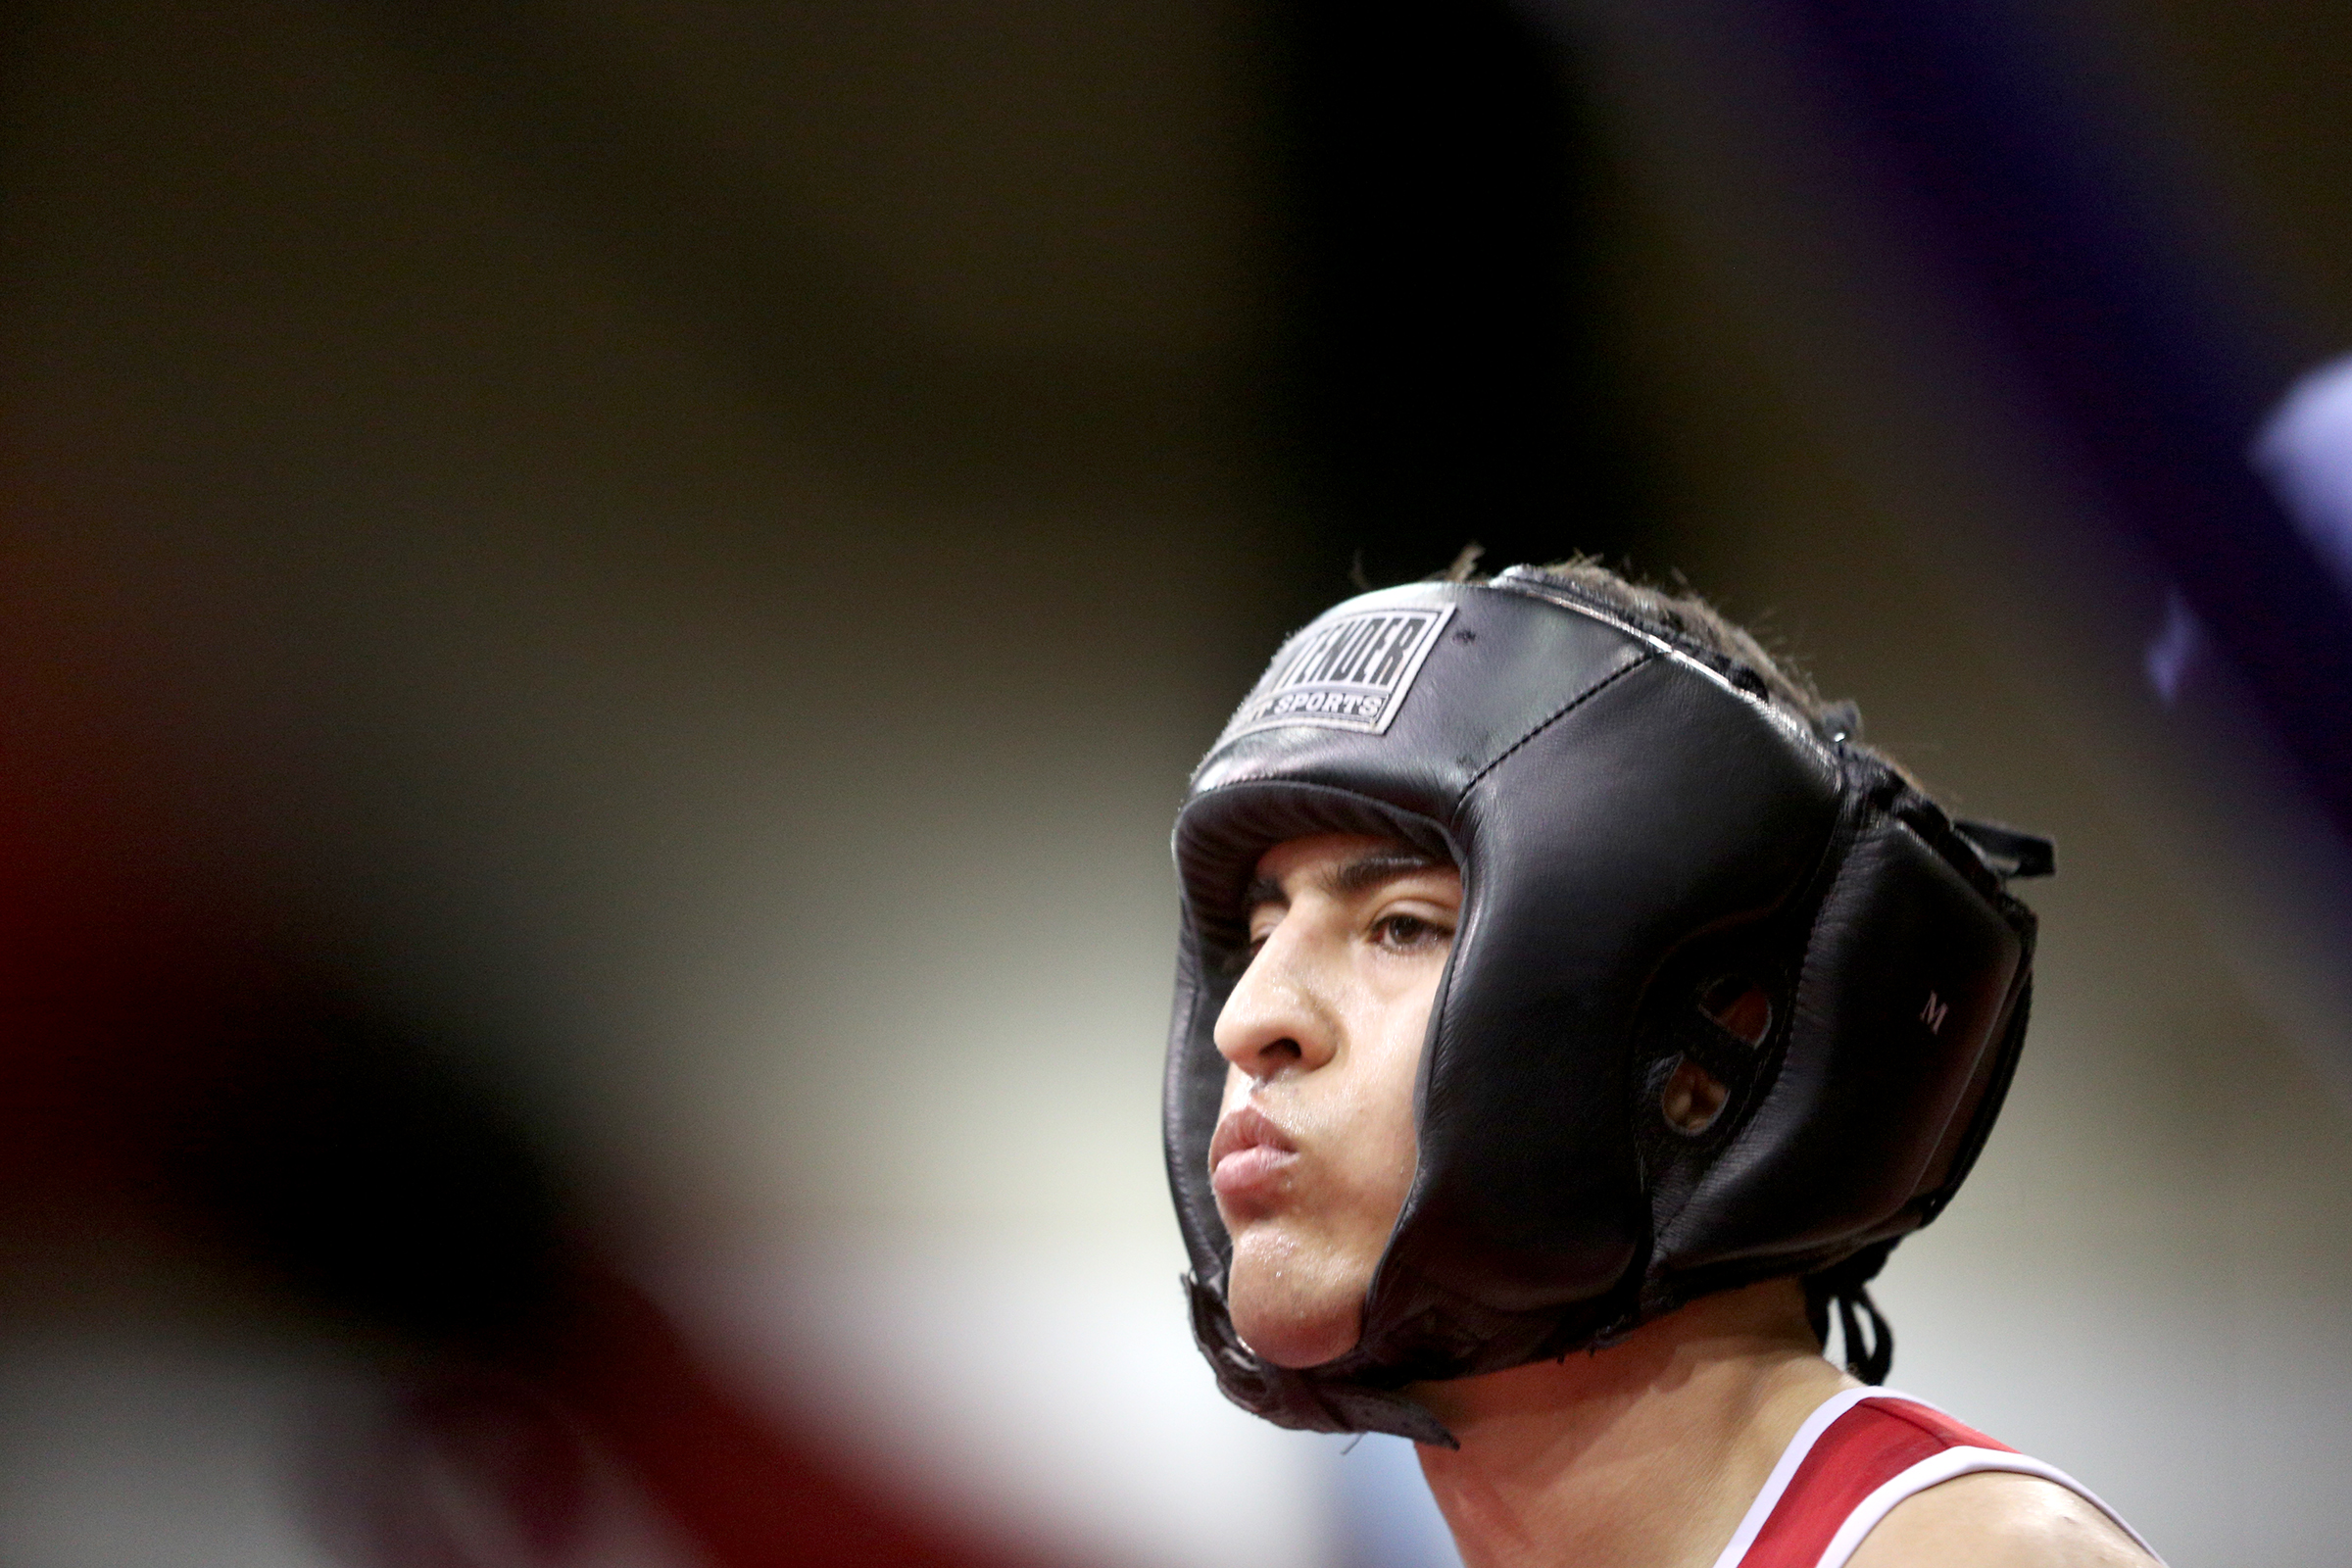 Ammeter boxer Jonathan Peña gets ready for his match at the Oregon Golden Gloves championship tournament at the Salem Amory on Saturday, Feb. 2, 2019.